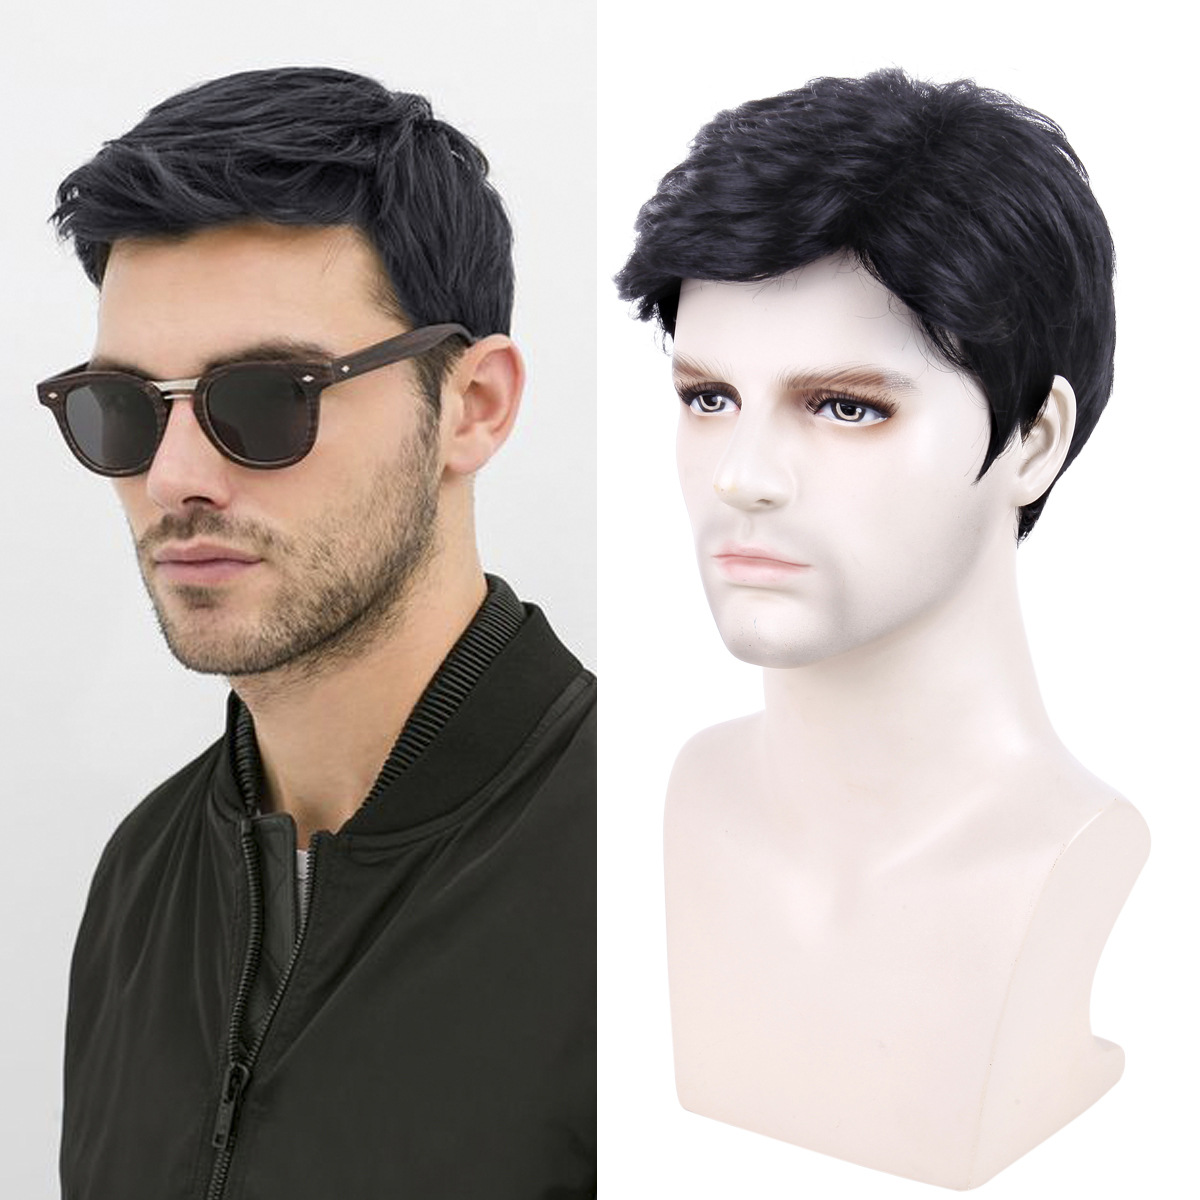 Wig male short hair men's wig black chemical fiber hair cover synthetic wigs men's wig 0